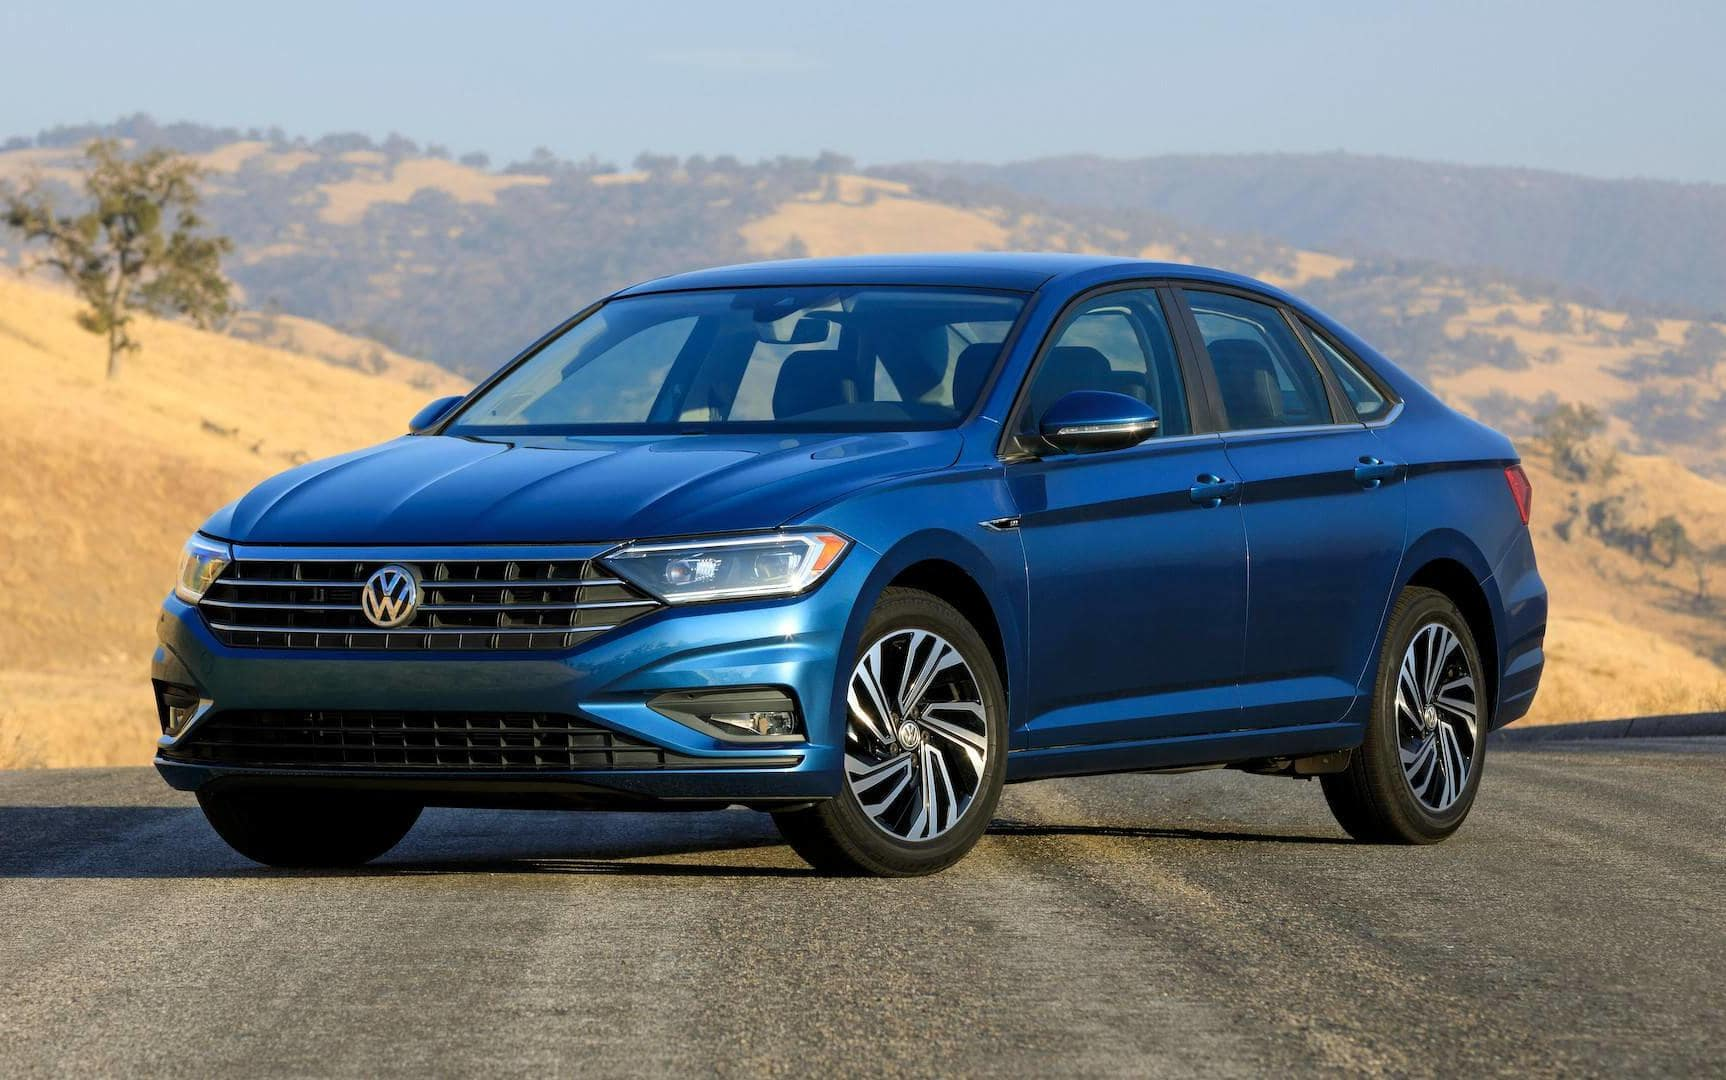 Is it worthwhile to import the VW Jetta?